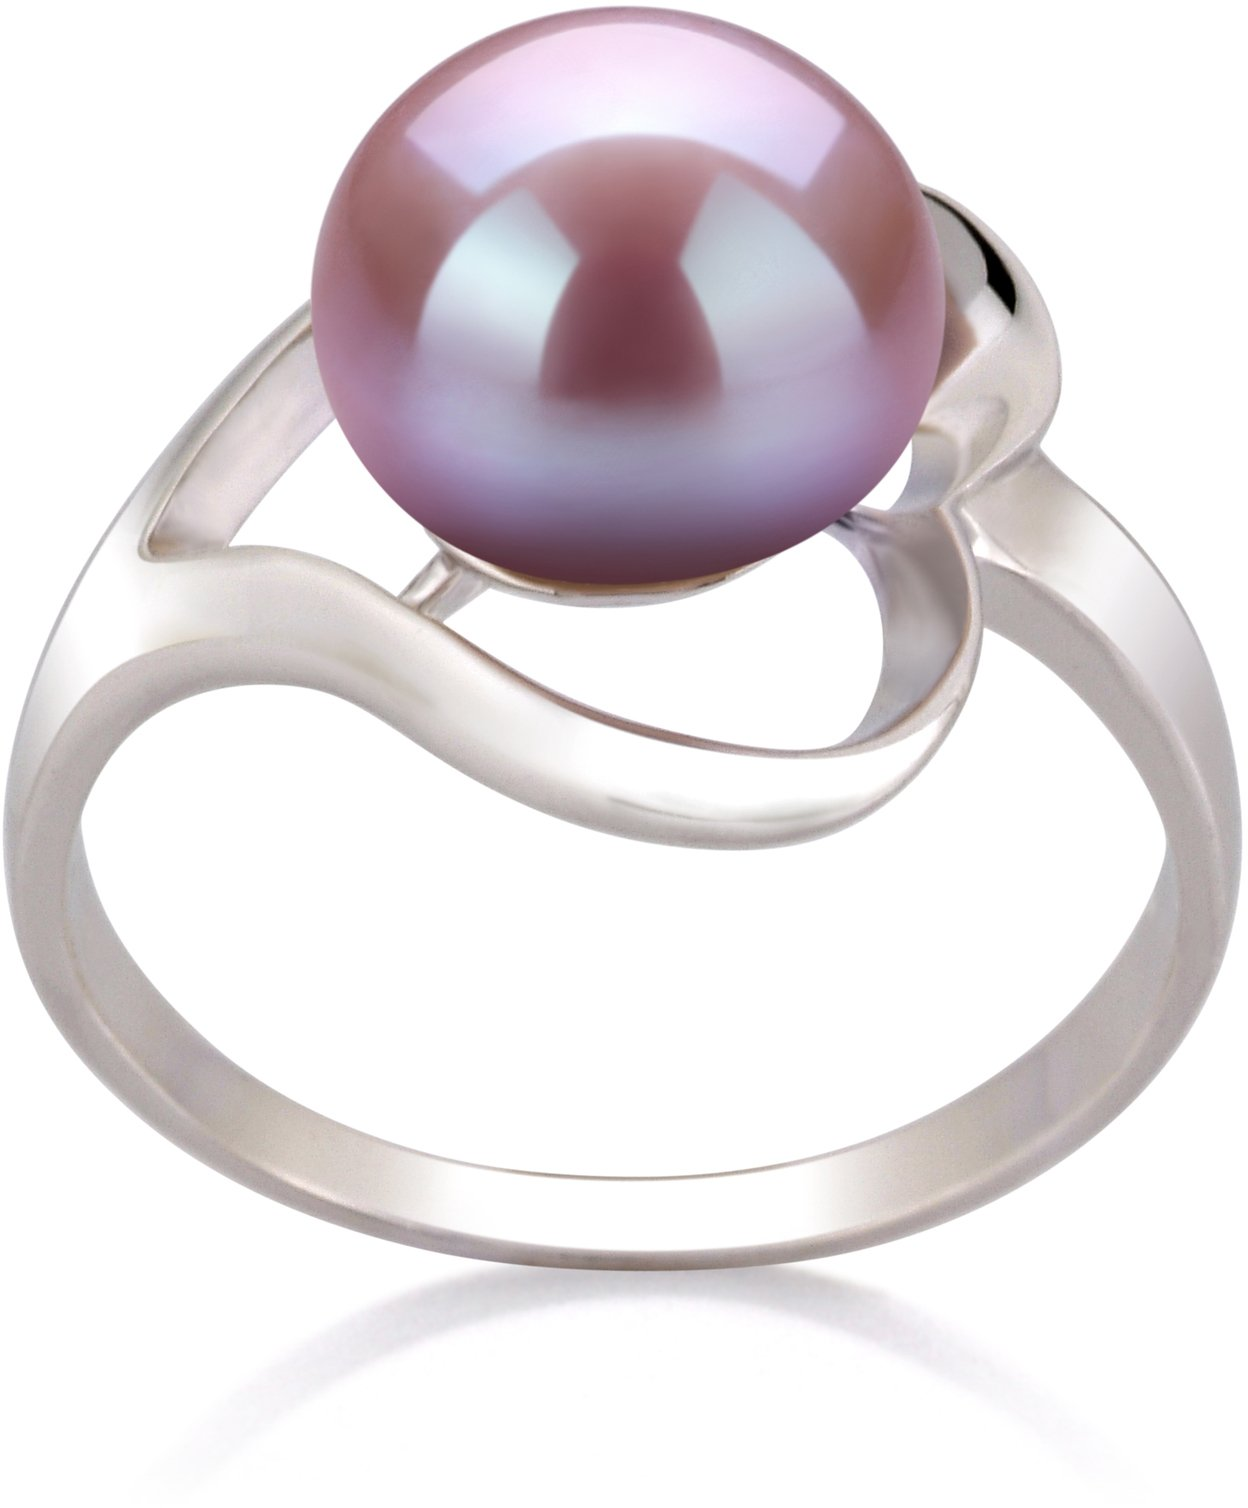 Sadie Lavender 9-10mm AA Quality Freshwater 925 Sterling Silver Cultured Pearl Ring - Size-9